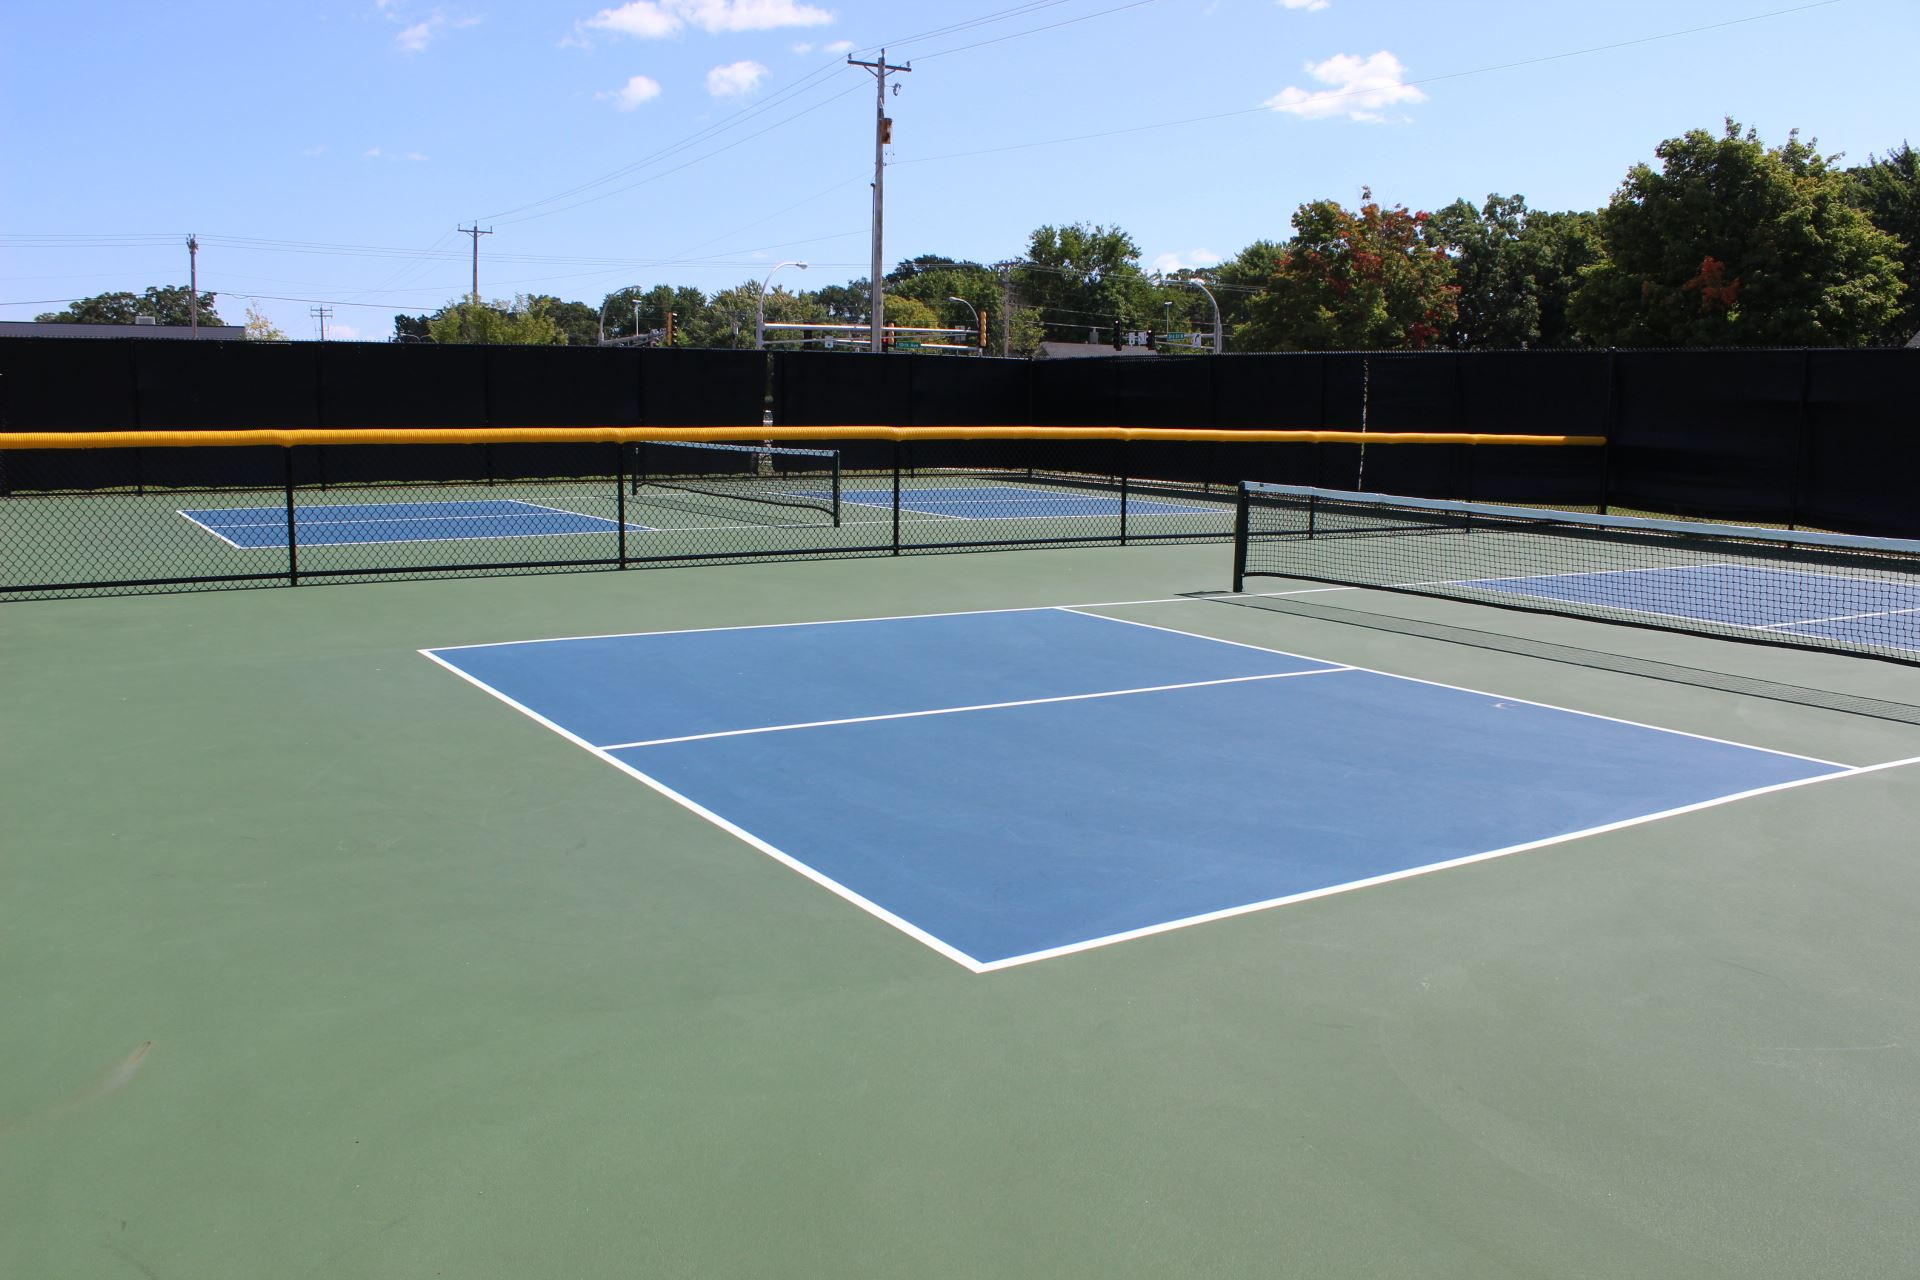 Pickleball Courts at Rivers Edge Park